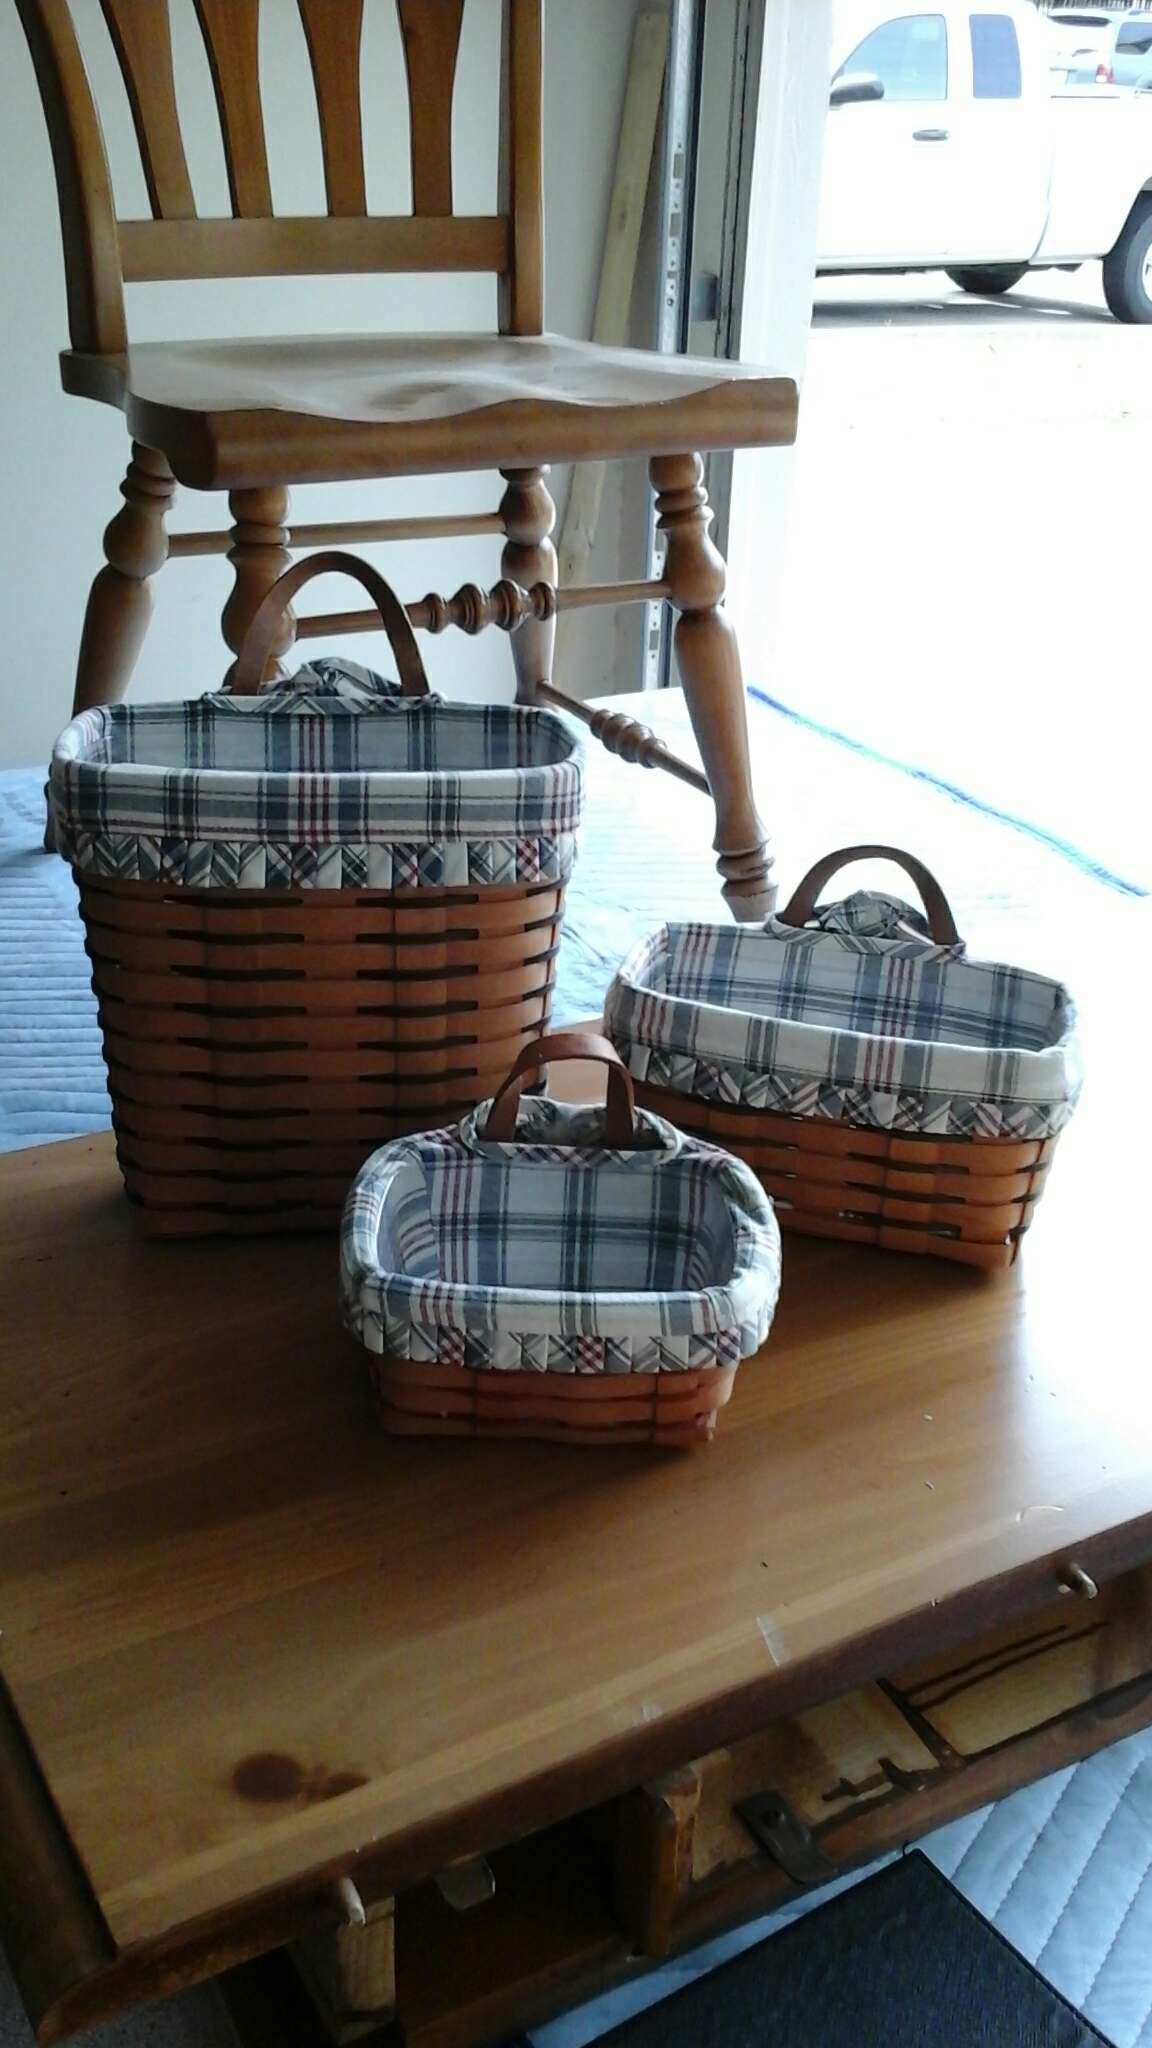 Longaberger Baskets For Sale In Plano Tx 5miles Buy